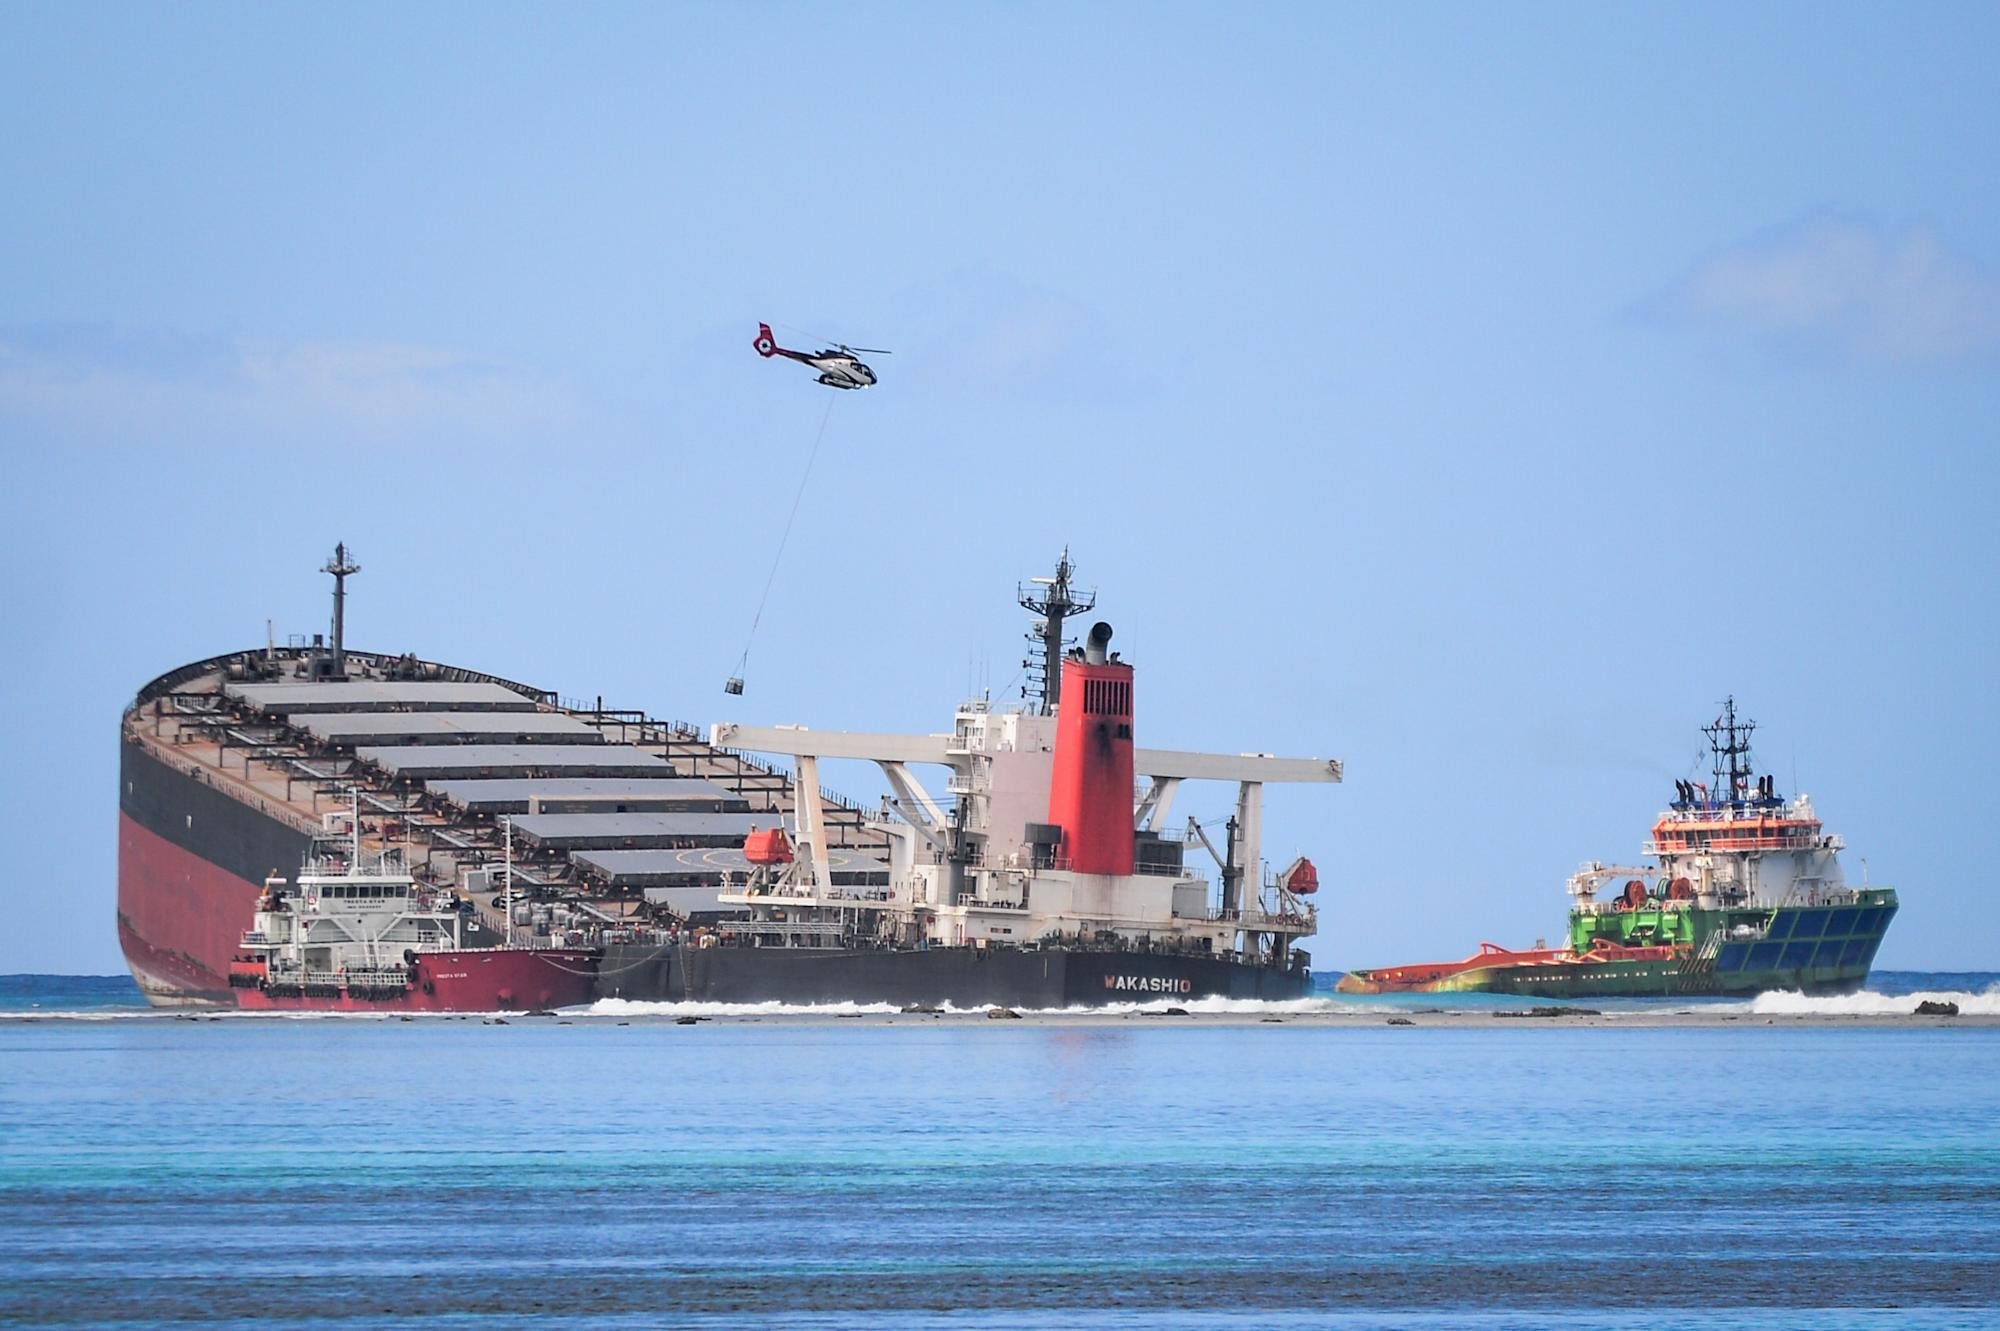 Mauritius Tanker Splits And Spills More Oil Into Indian Ocean